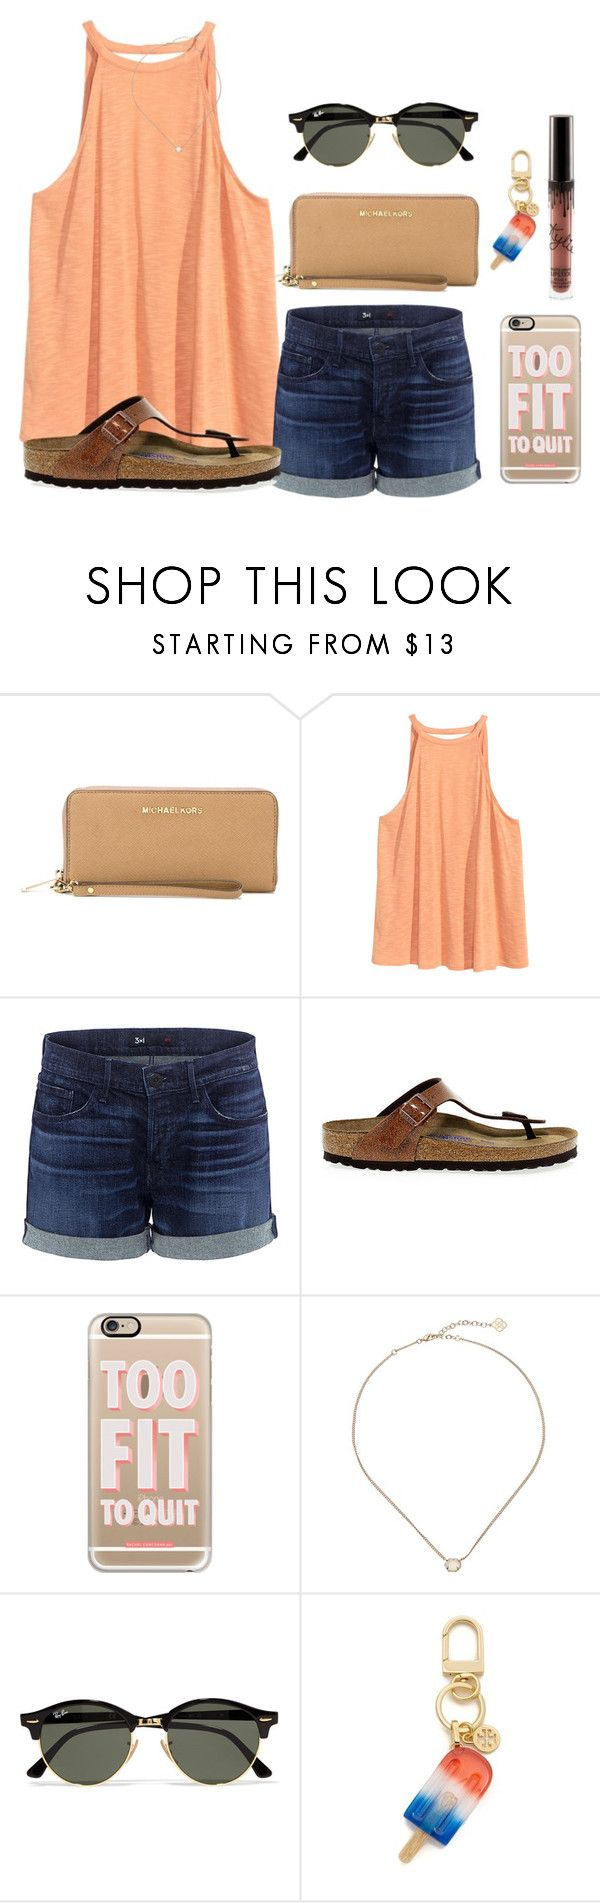 """""""I don't mean to brag I don't mean to boast, I love all y'all but I love me the most - """"I love Me"""" by Meghan Trainor"""" by kari-luvs-u-2 ❤ liked on Polyvore featuring MICHAEL Michael Kors, H&M, 3x1, Birkenstock, Casetify, Kendra Scott, Ray-Ban and Tory Burch"""